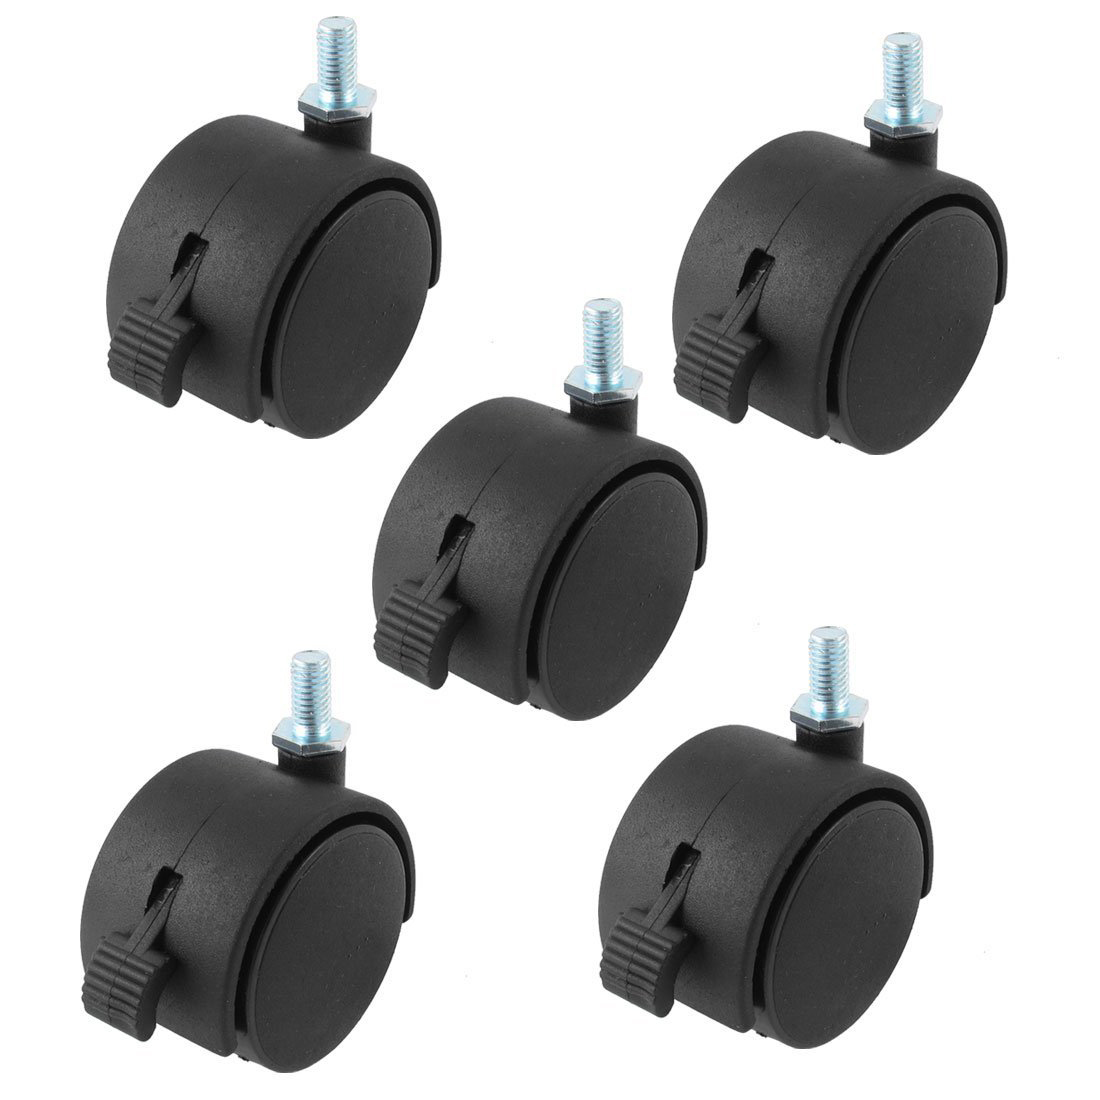 Фото 8mm Threaded Stem 5 Inch Dia Wheel Chair Swivel Caster With brake 5 Pcs Black